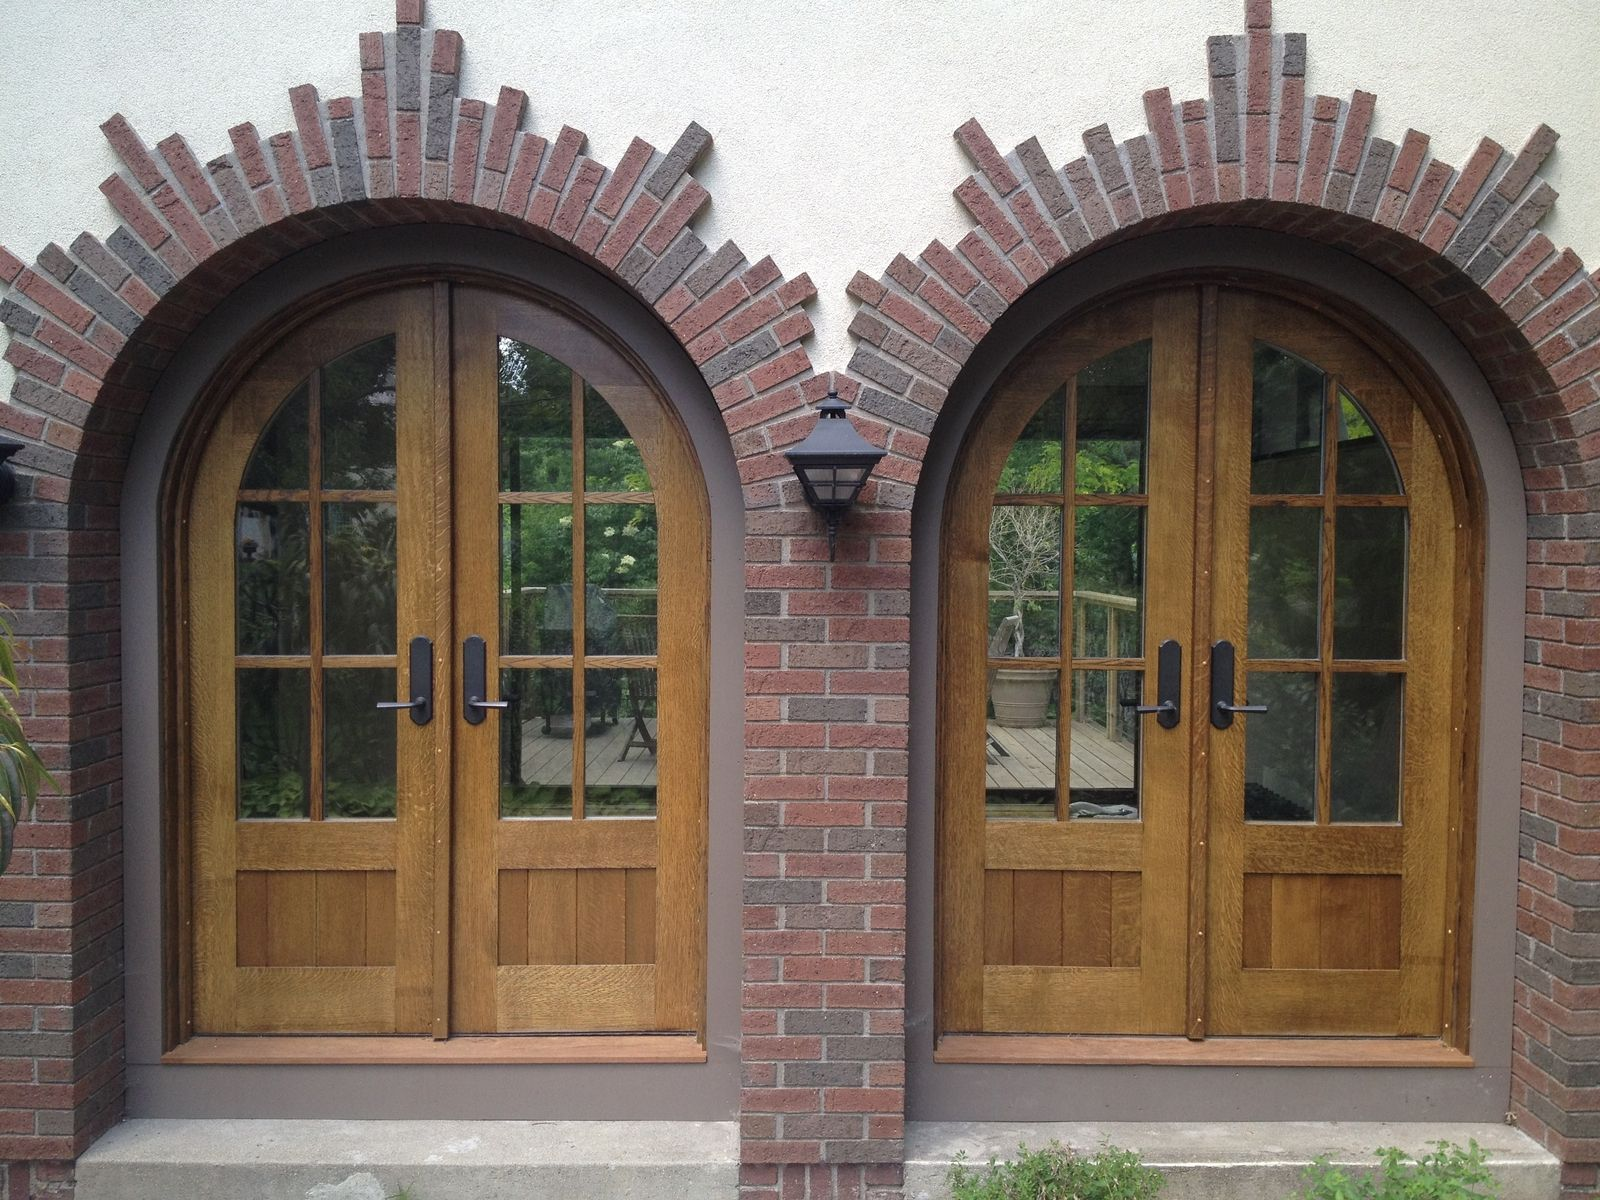 Custom arched quarter sawn white oak entry doors by huisman custom made arched quarter sawn white oak entry doors rubansaba